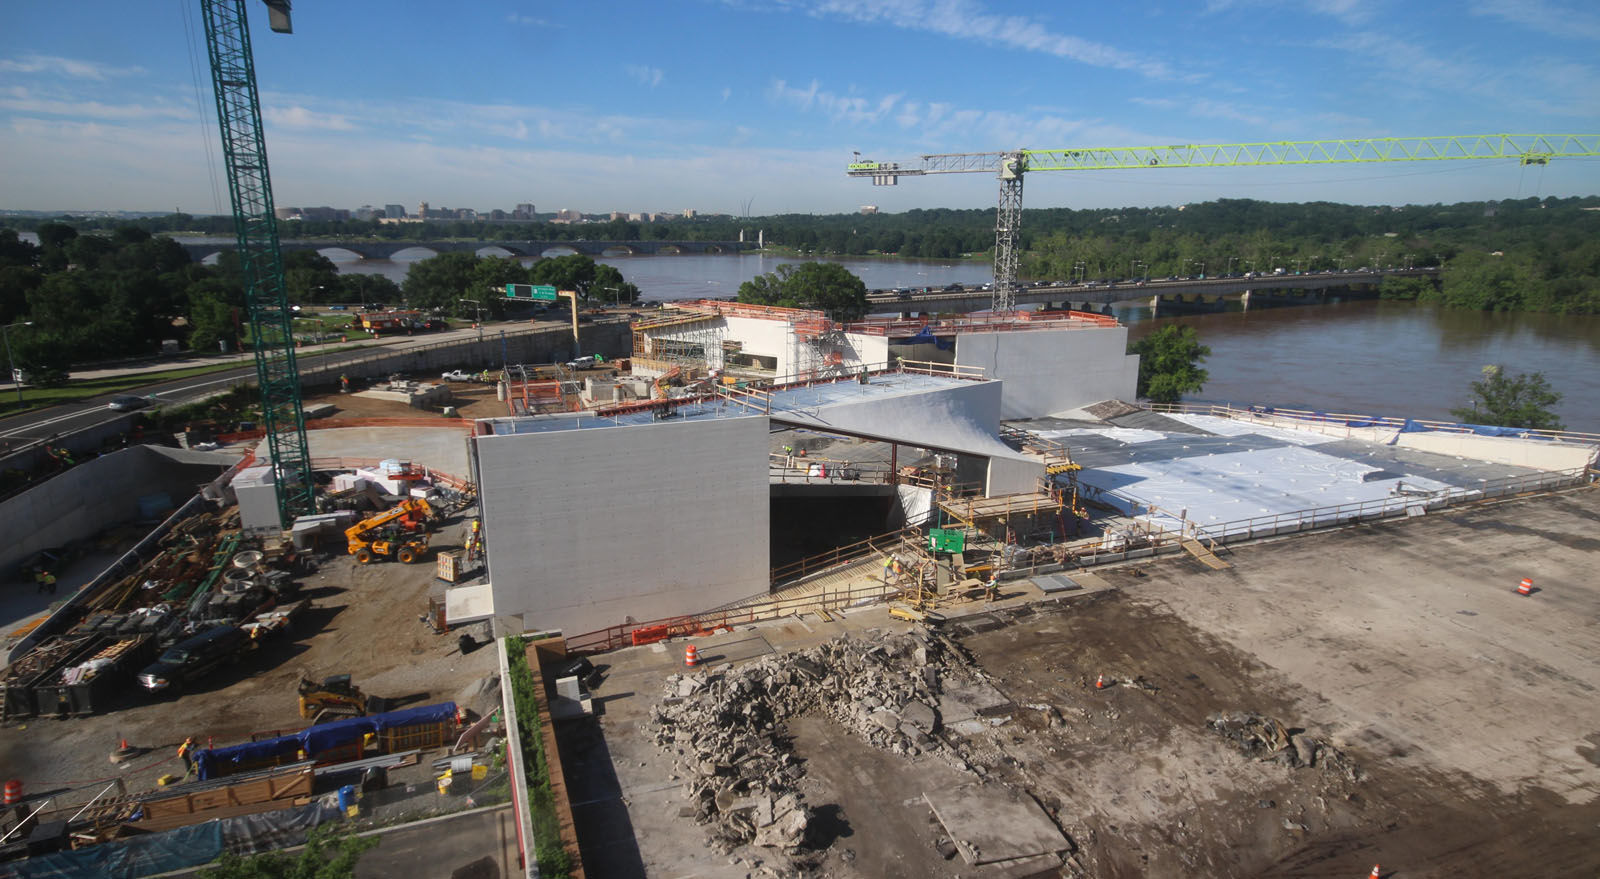 A look at the progress made on the construction of the Kennedy Center's expansion project on June 5, 2018. (Courtesy the Kennedy Center)